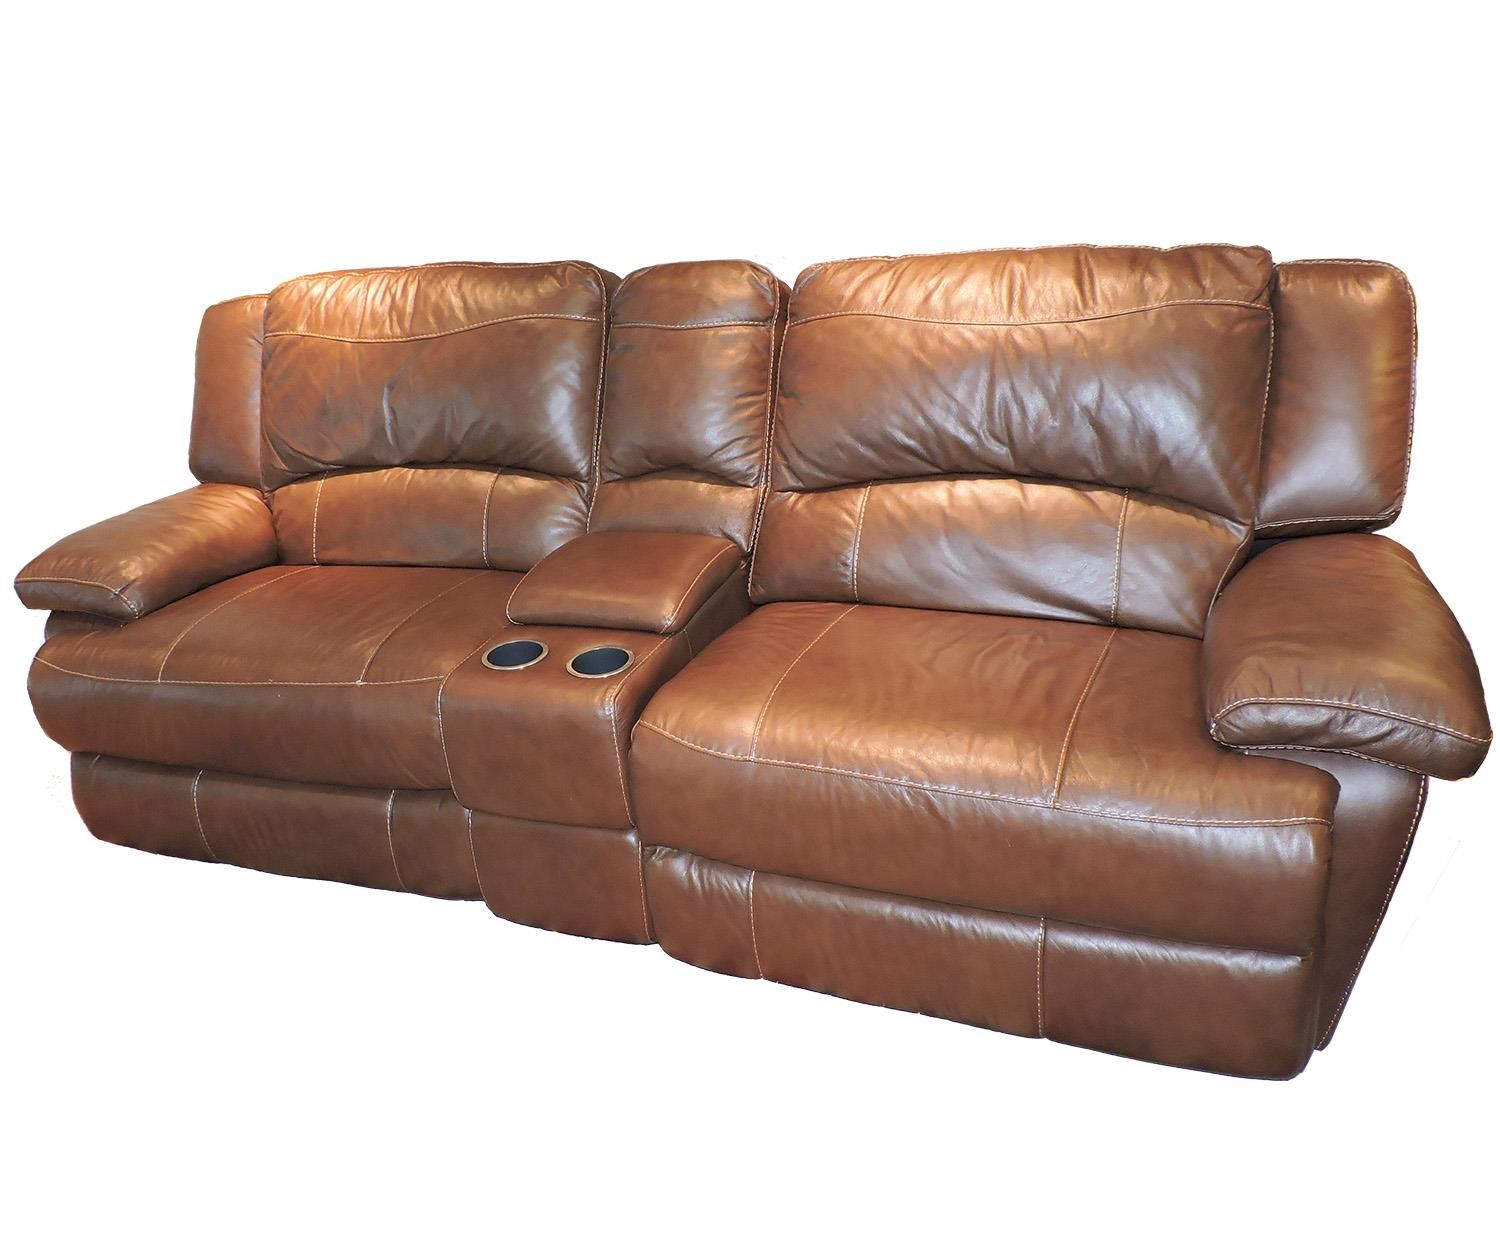 Belfort Select Grayson Love Seat Recliner - Item Number: T118CS-15ER1X+EL1X+STA